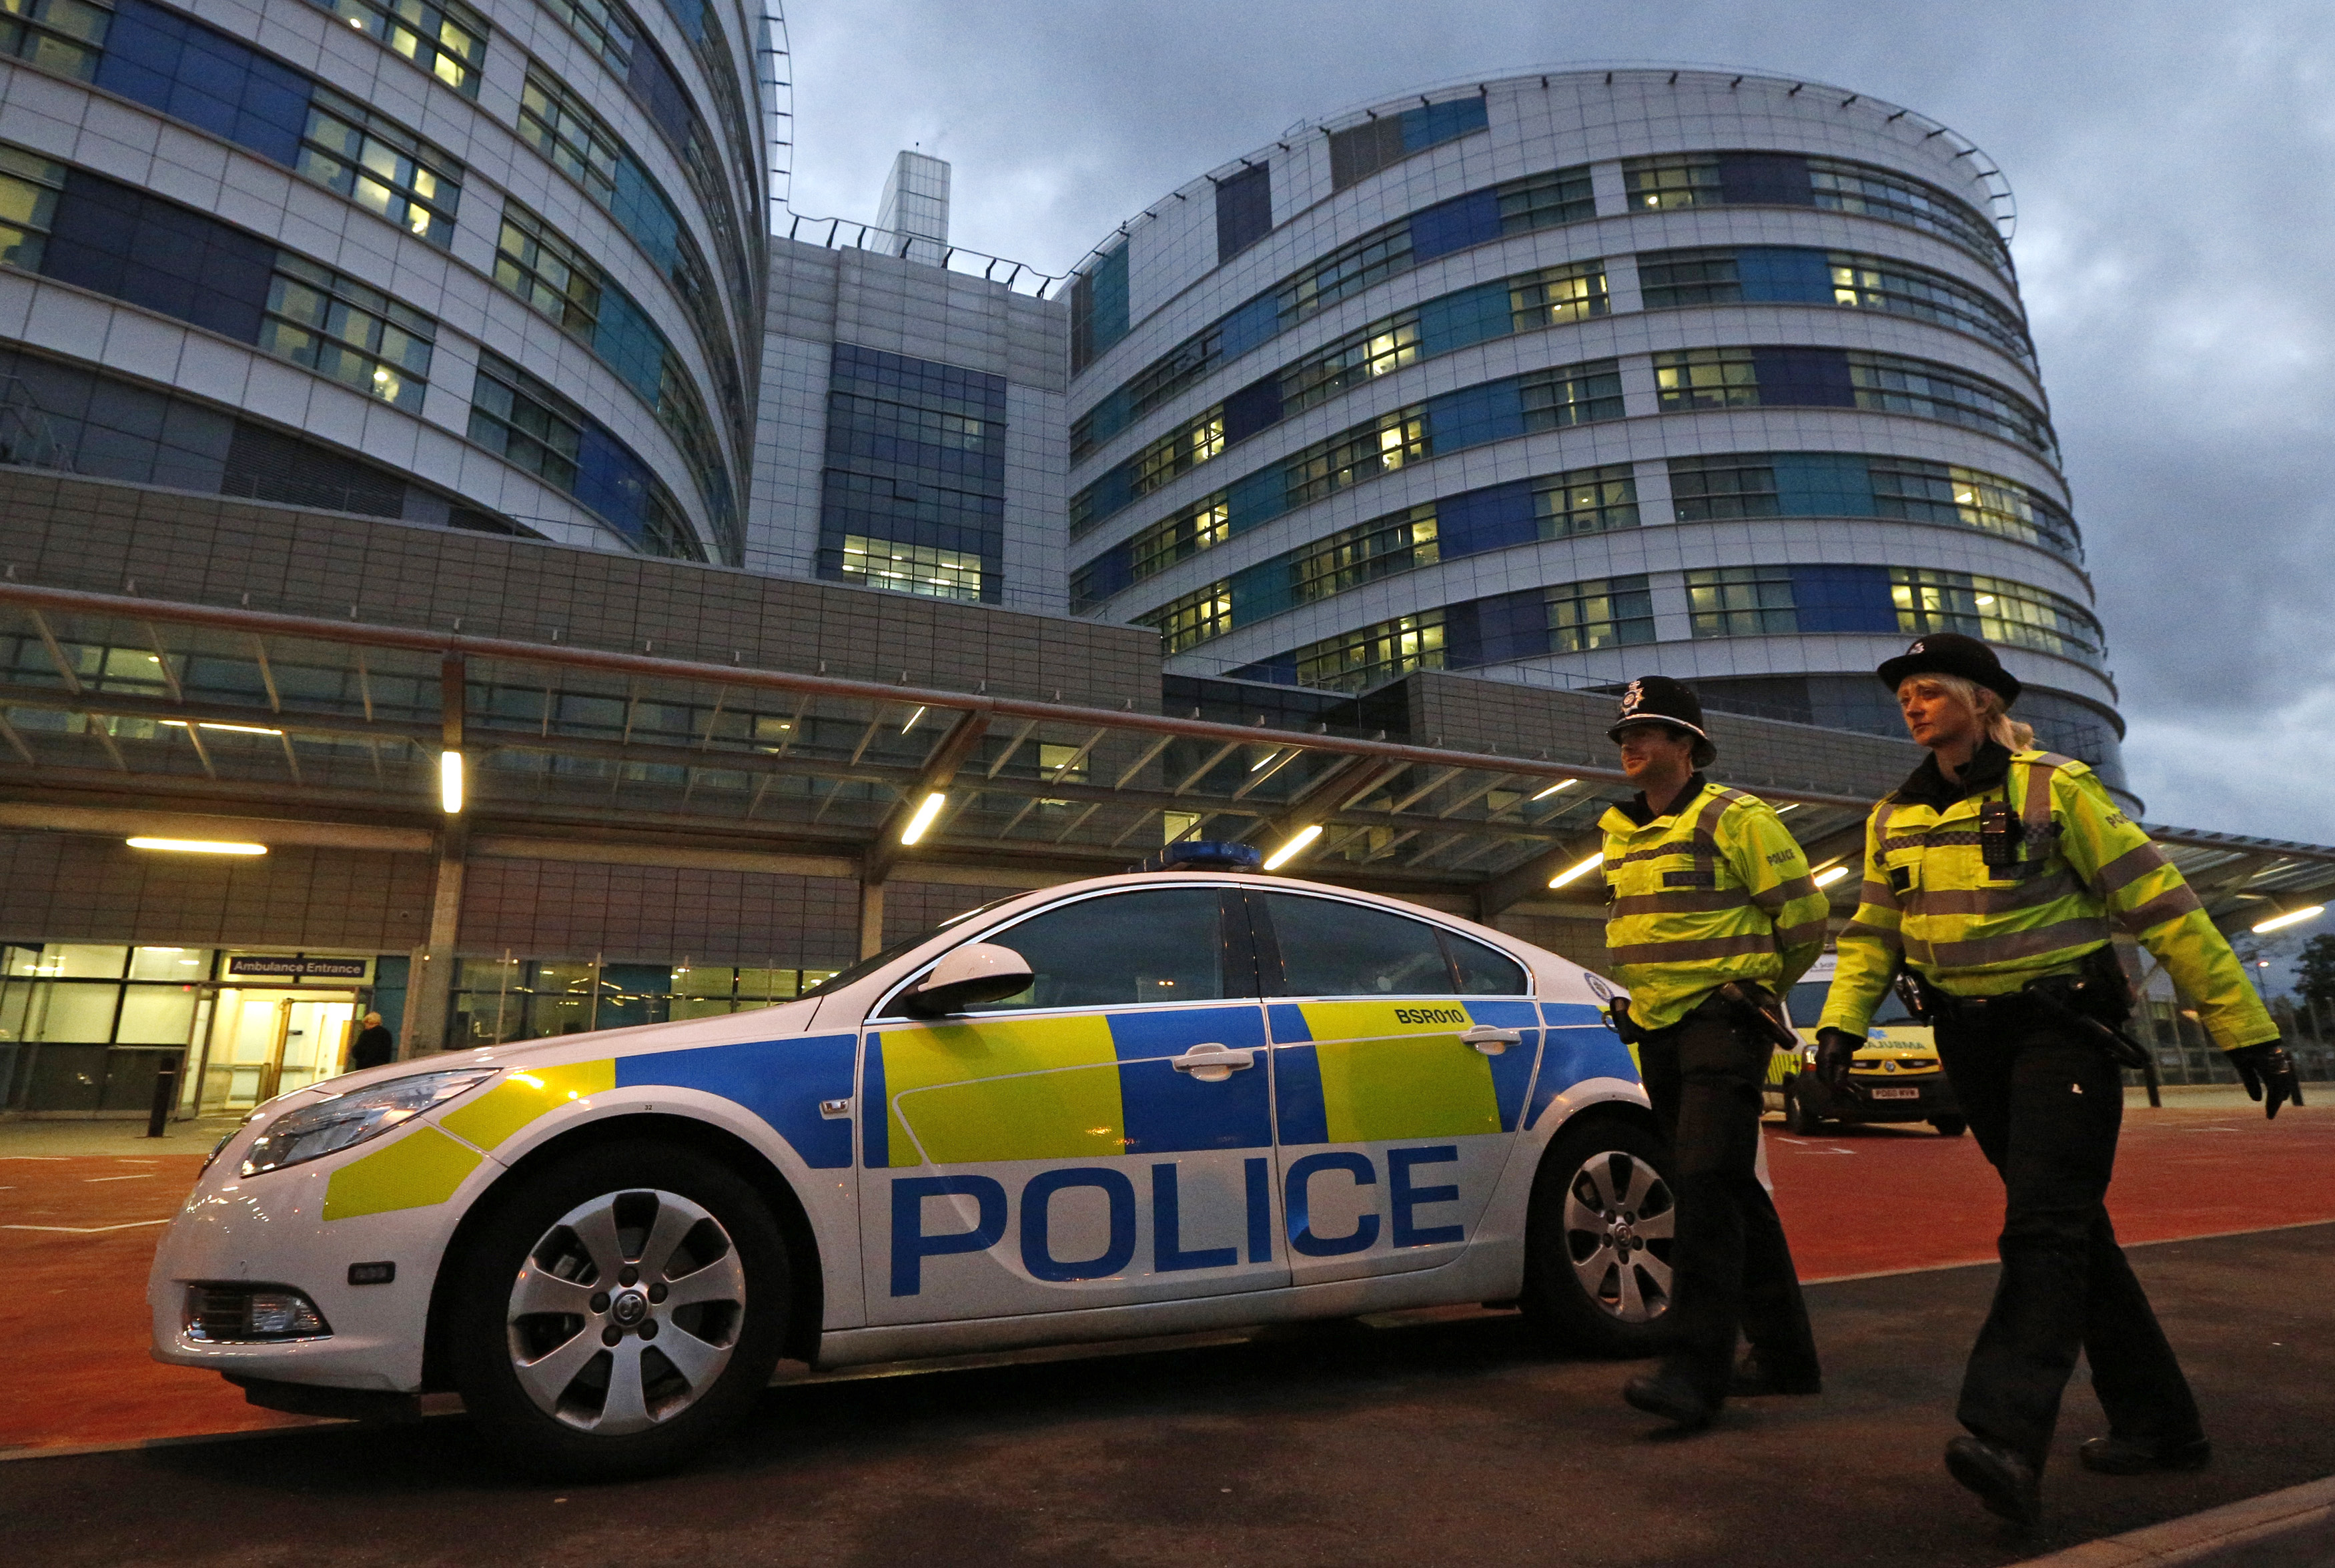 Police officers patrol outside the emergency entrance of the Queen Elizabeth Hospital where injured Pakistani teenager Malala Yousufzai arrived for treatment in Birmingham, central England October 15, 2012. A Pakistani schoolgirl shot in the head by